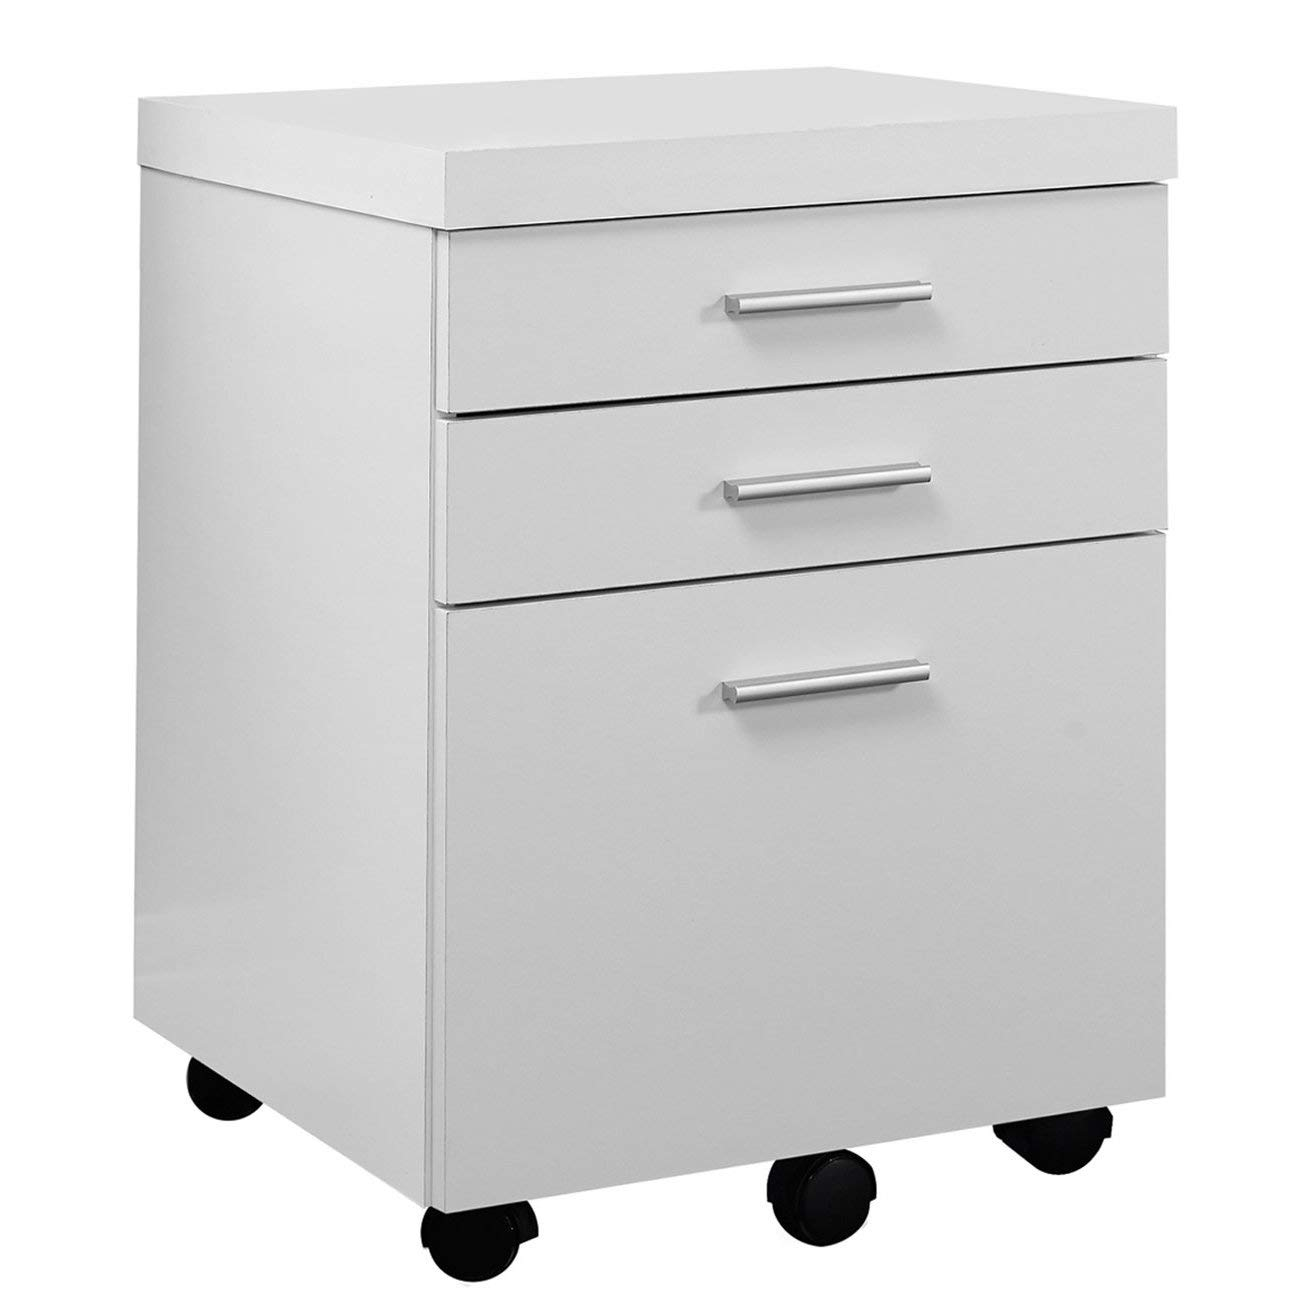 Traveller Location: Monarch Specialties White Hollow-Core 3 Drawer File Cabinet on  Castors: Kitchen & Dining